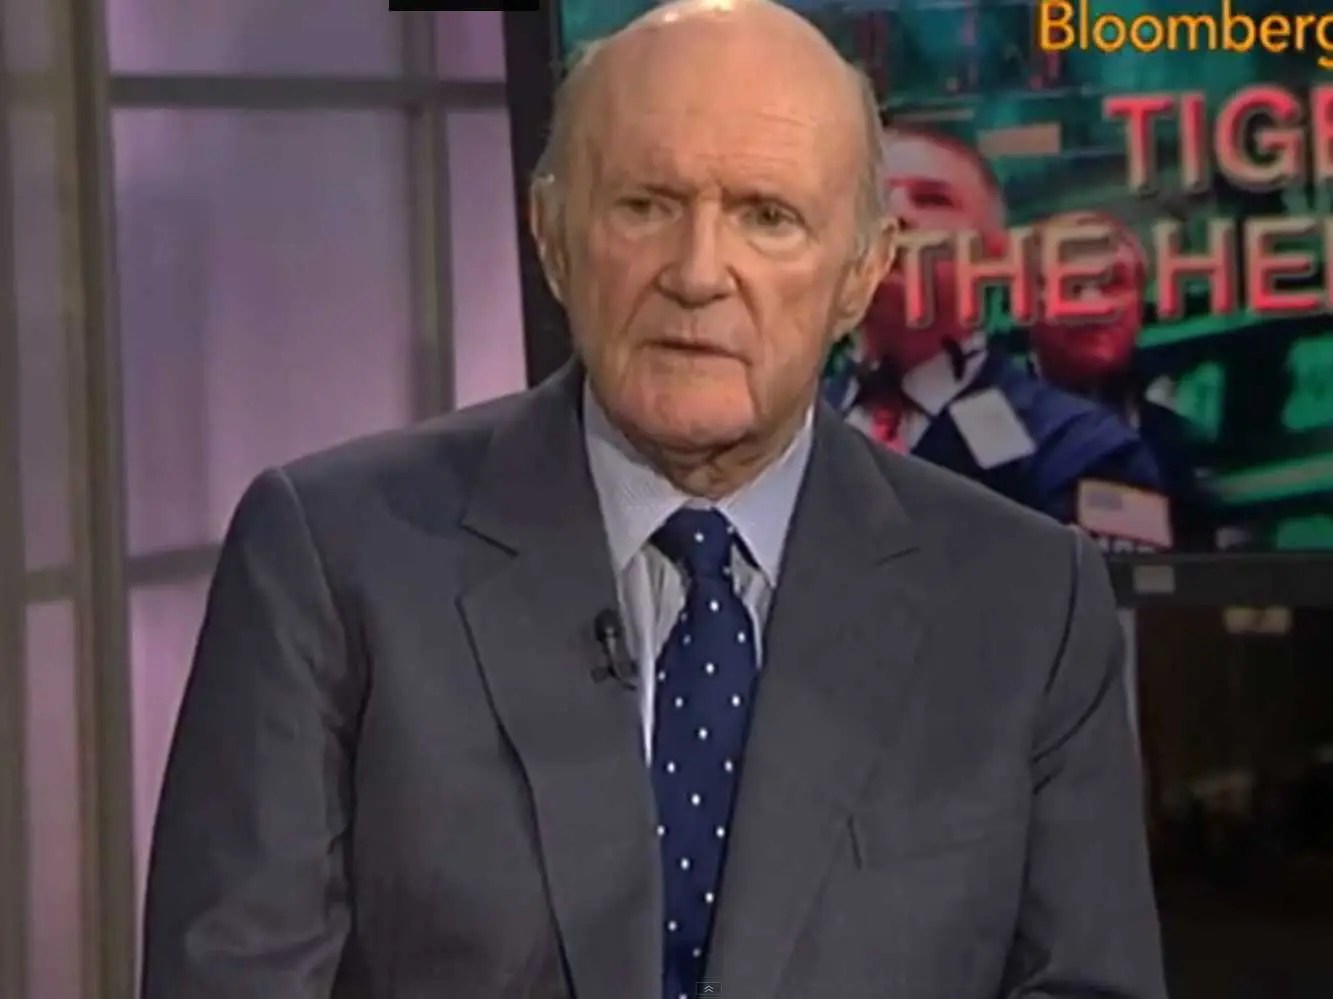 Julian Robertson served in the U.S. Navy after college.